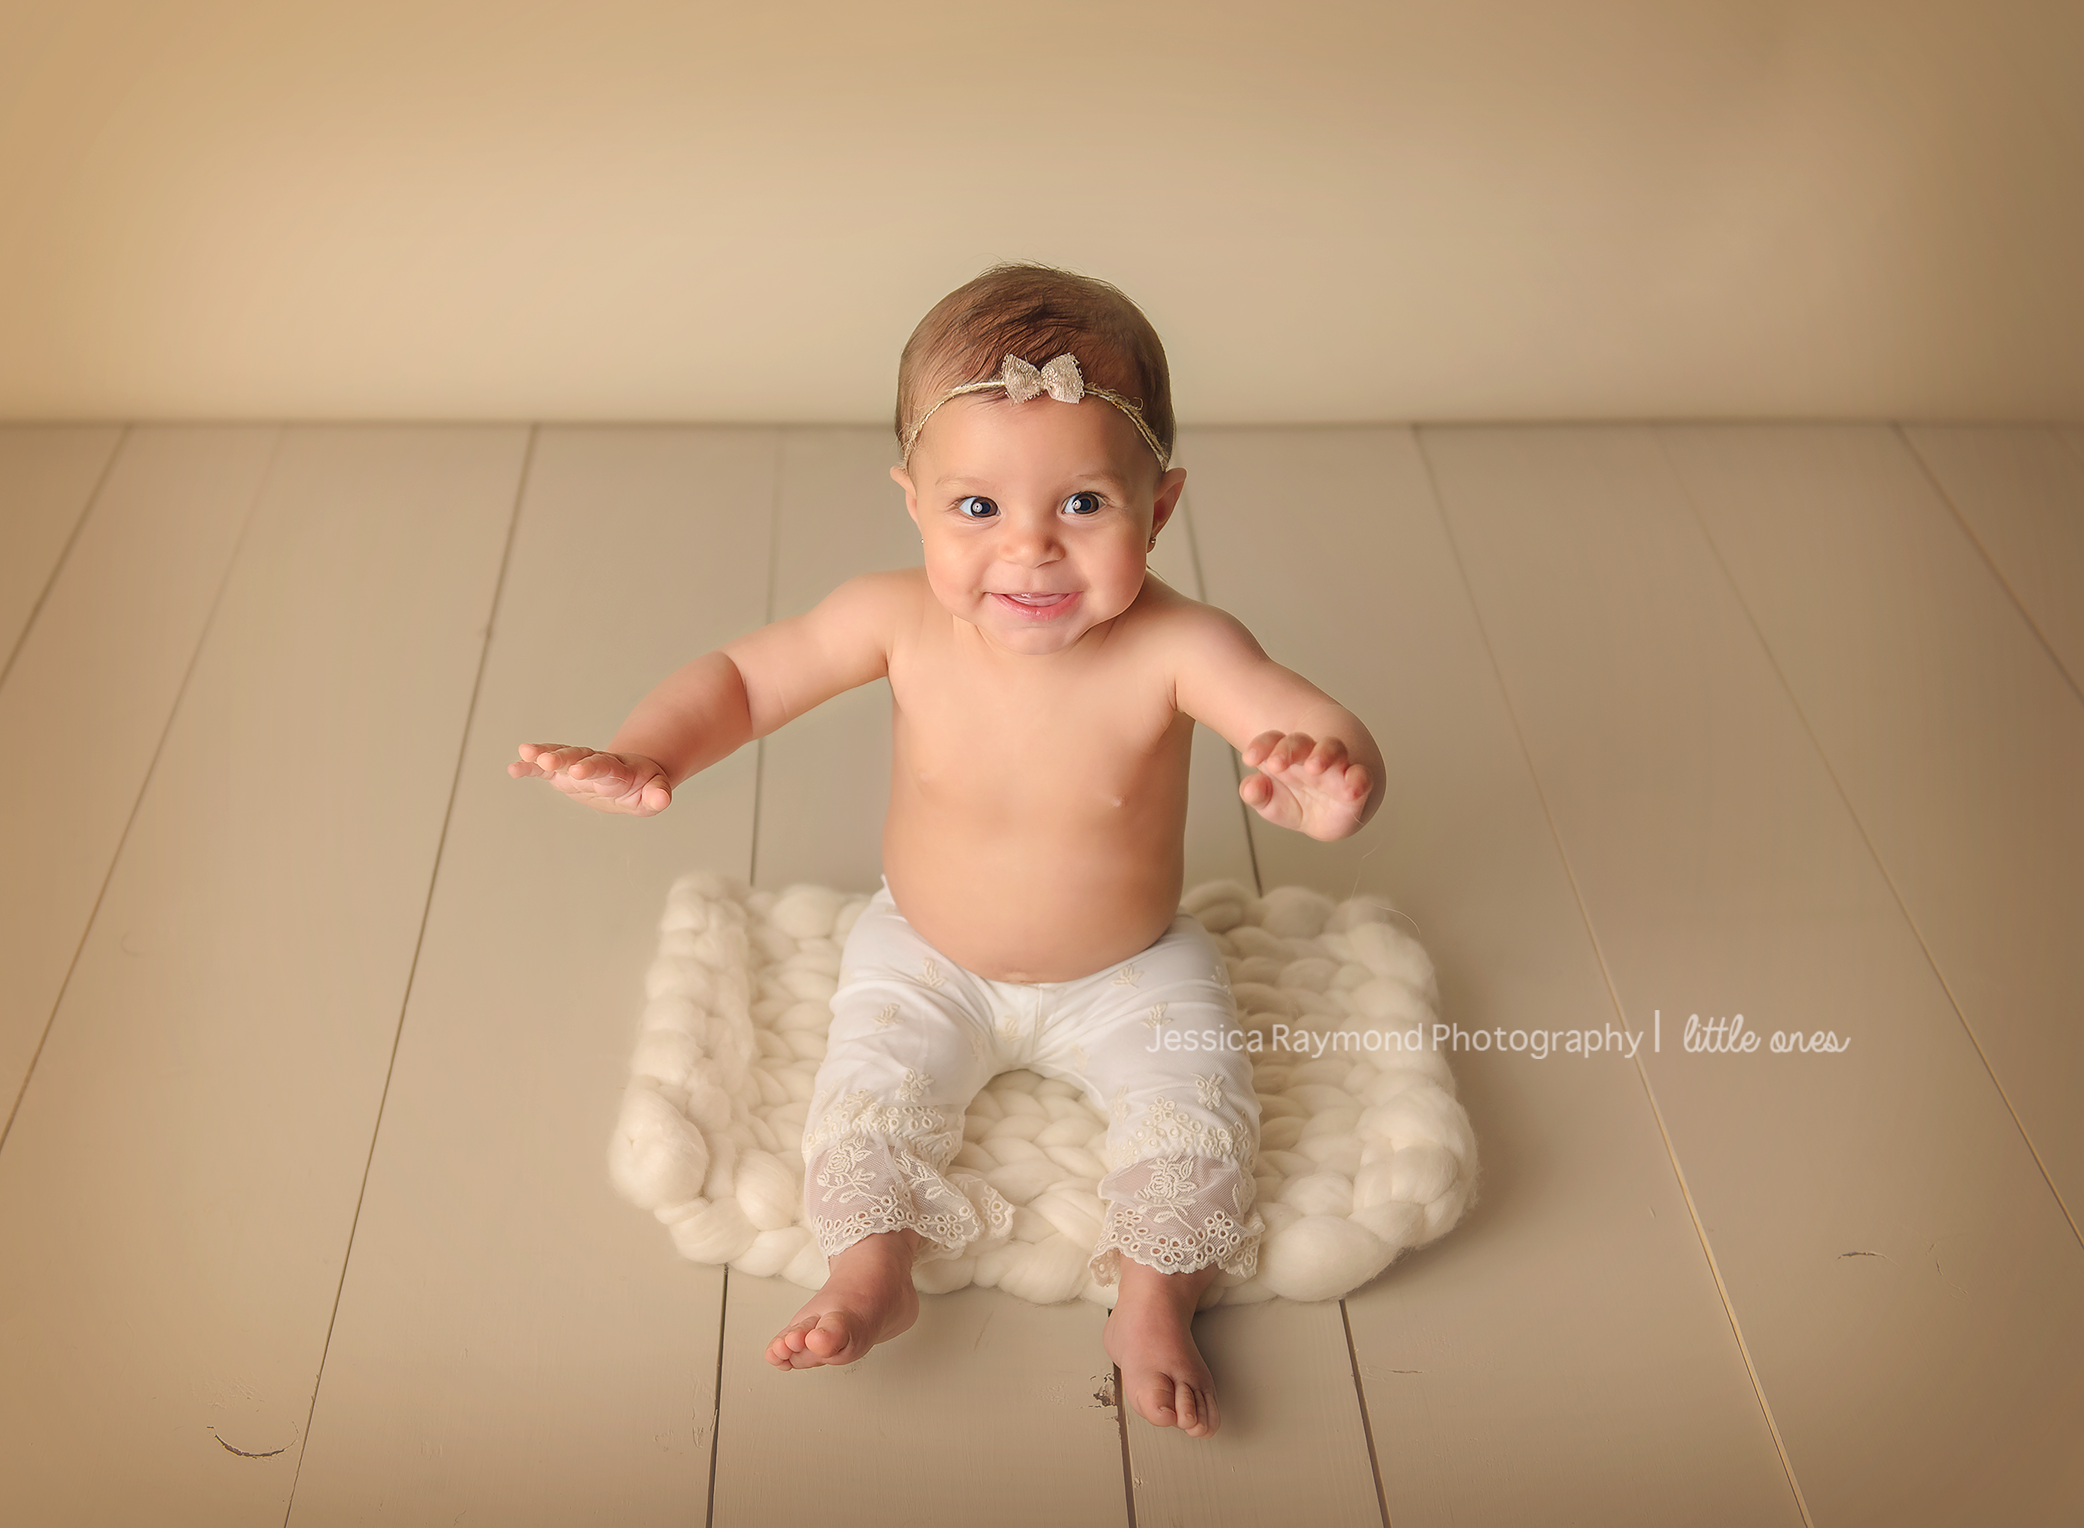 1 year old birthday pictures 1 year old baby shoot 1st birthday photo shoot baby first birthday photography baby on white rug